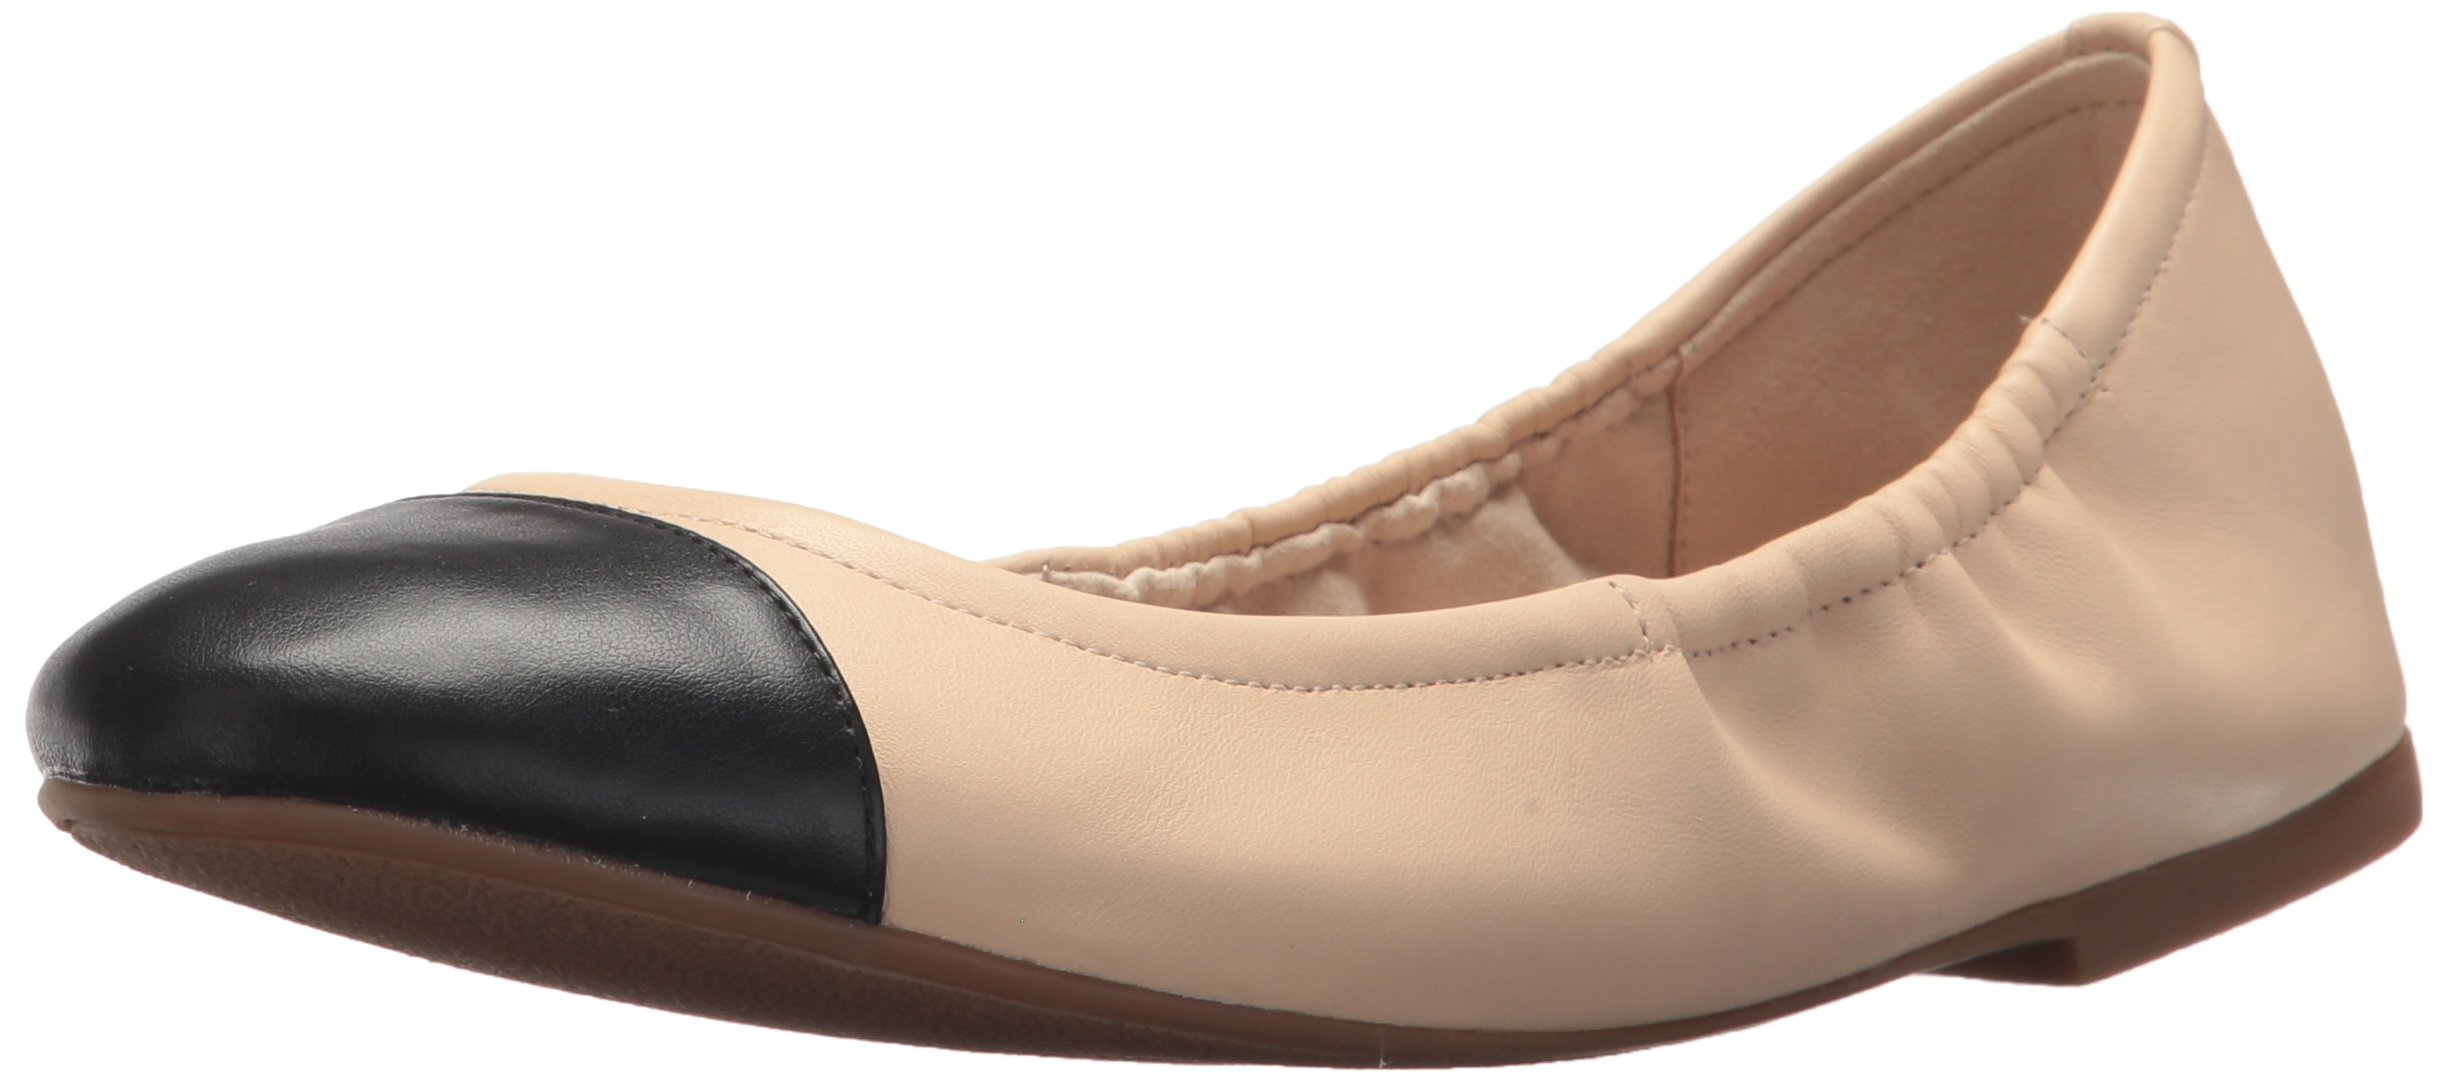 Sam Edelman Women's fraley Ballet Flat, Summer Sand/Black, 6.5 Medium US